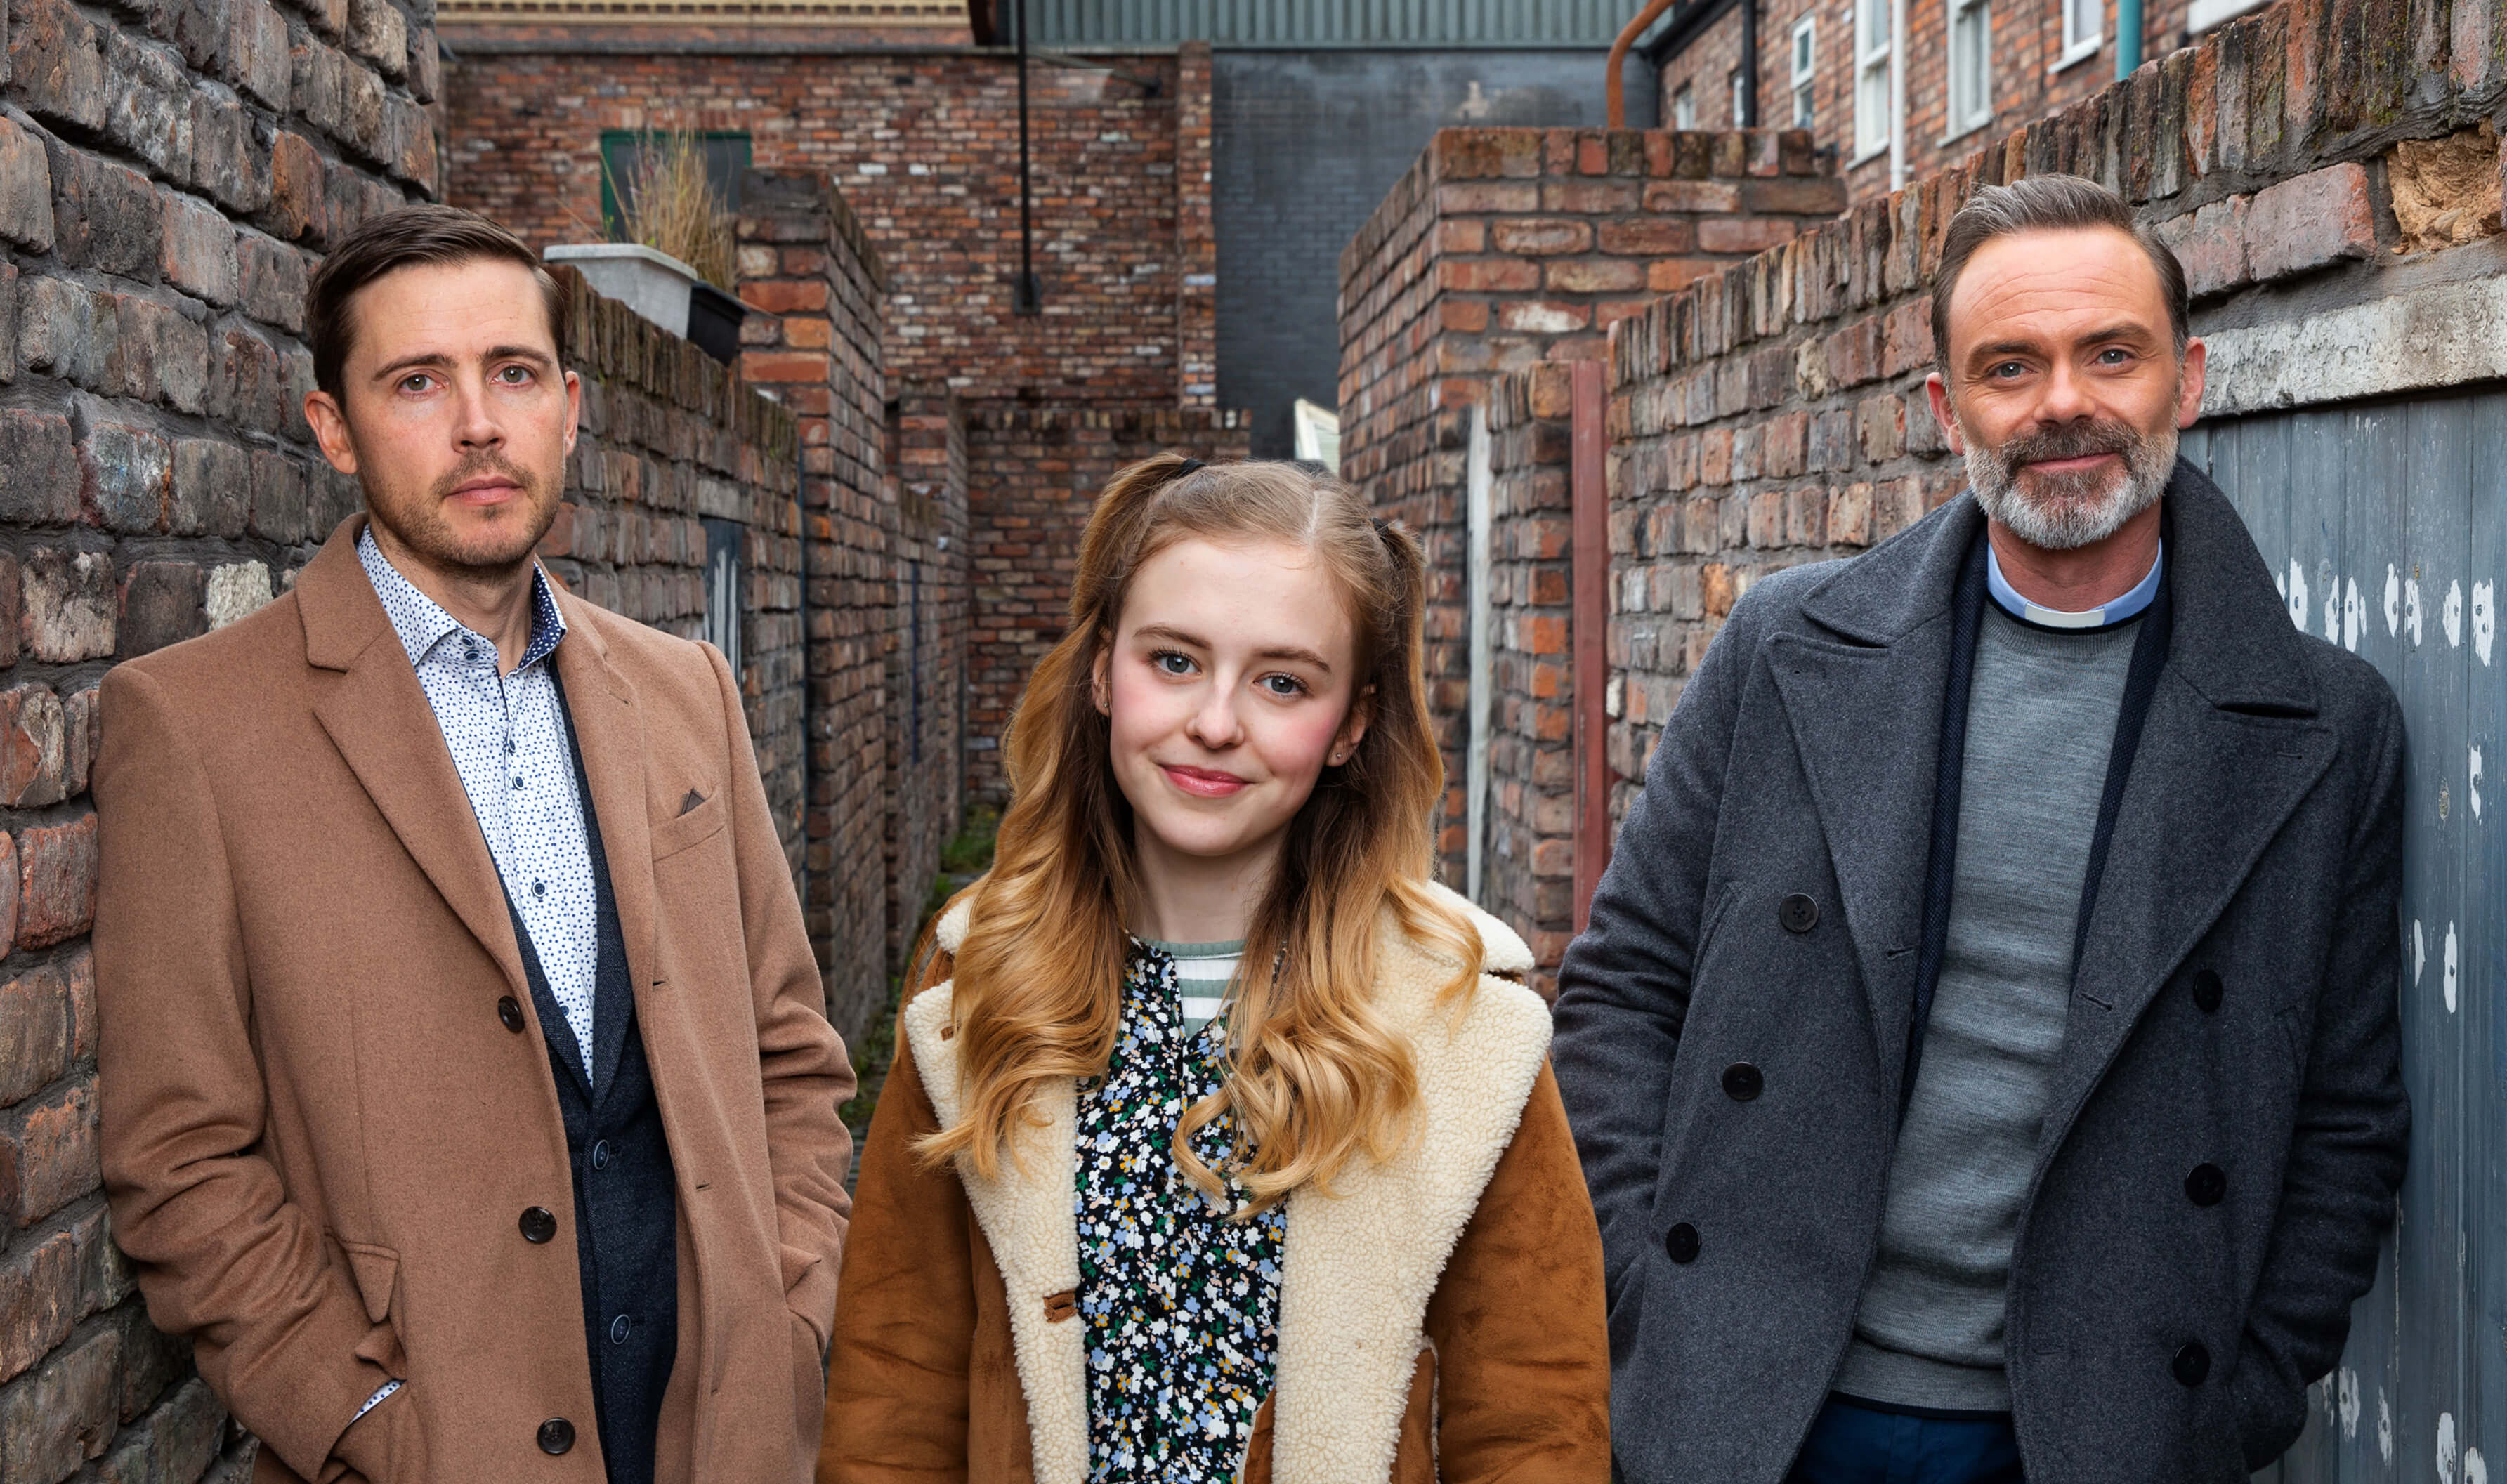 Todd, Summer and Billy from Coronation Street stand on set